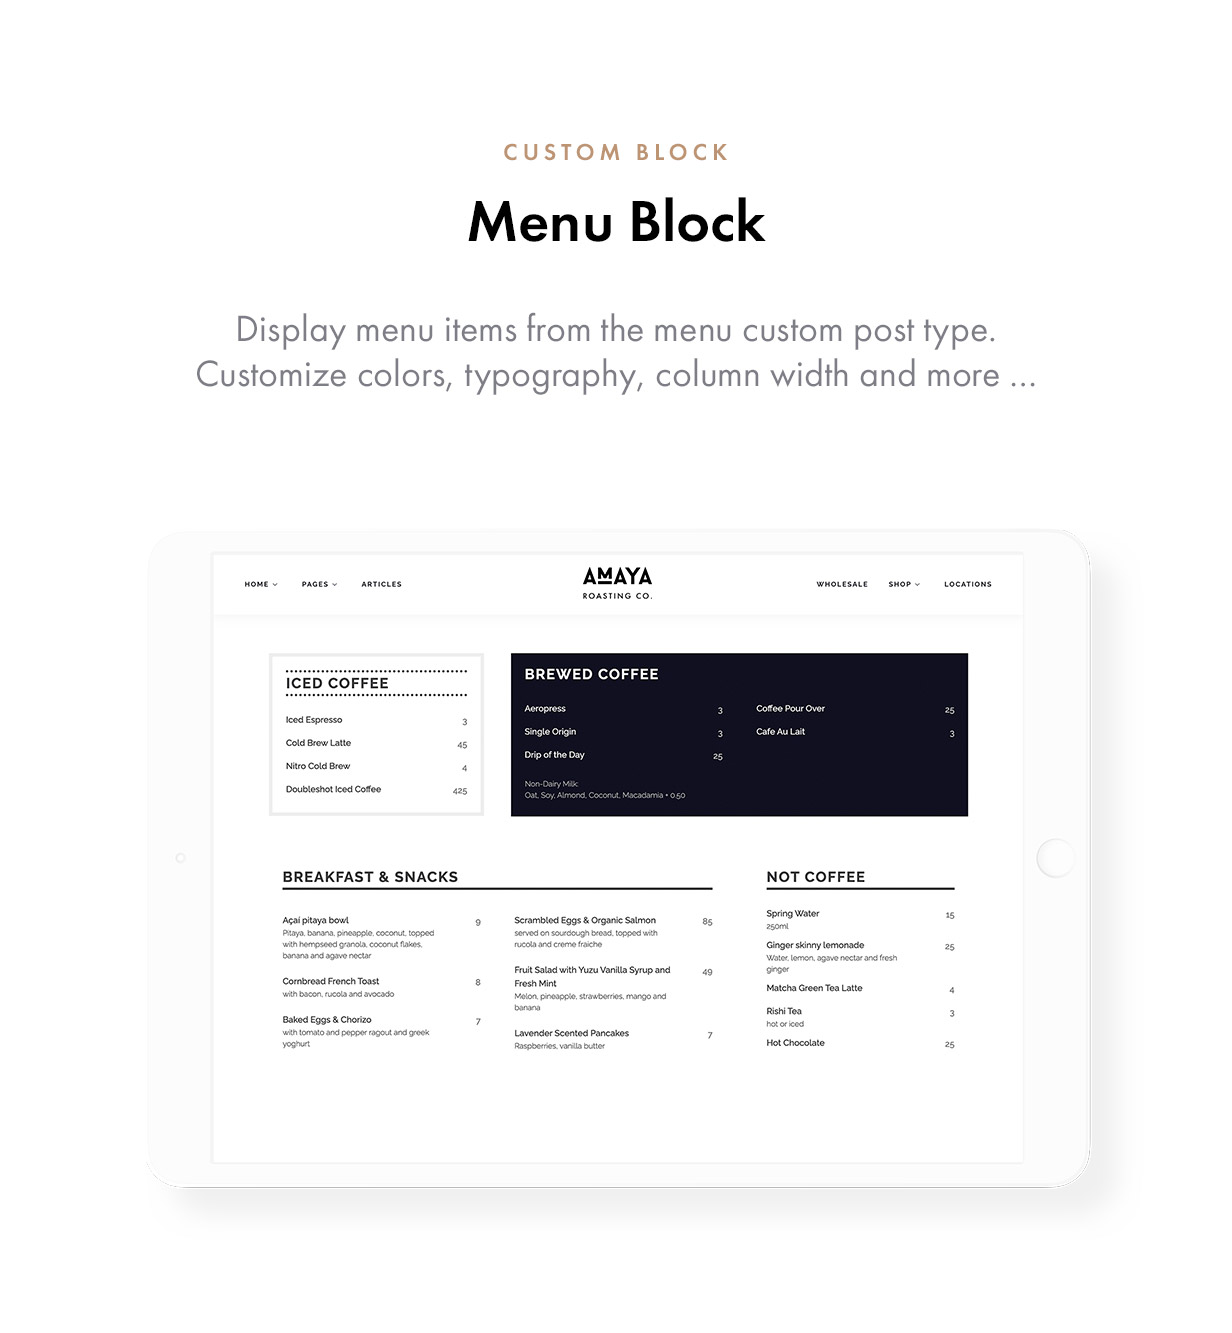 Coffee Bean - Cafe, Coffee Shop, Roastery & Bakery WordPress Theme - 5